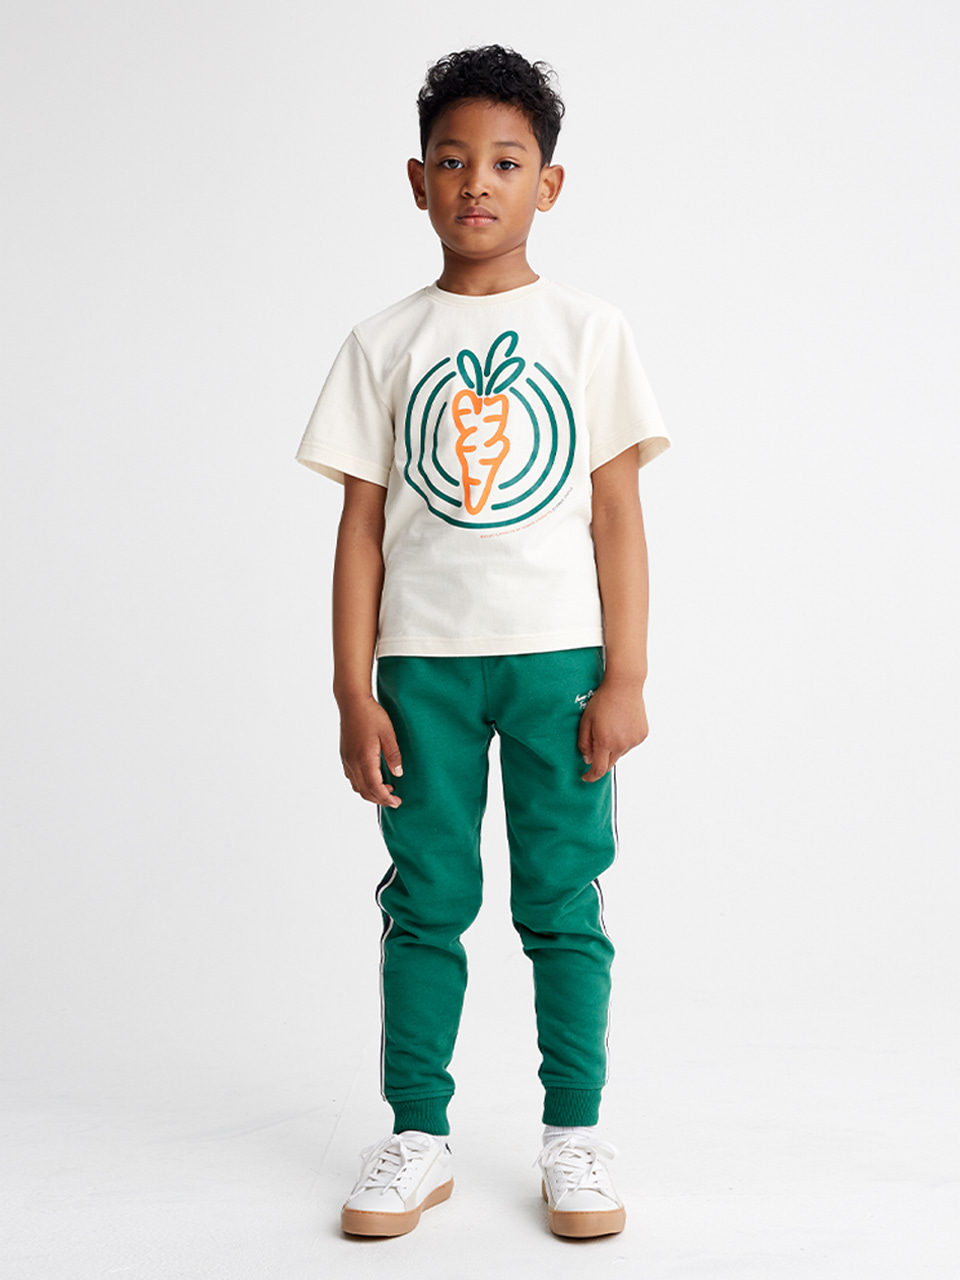 [SS20 SV X Carrots] Circle Carrots T-Shirts for Kids(Ivory) STEREO-SHOP